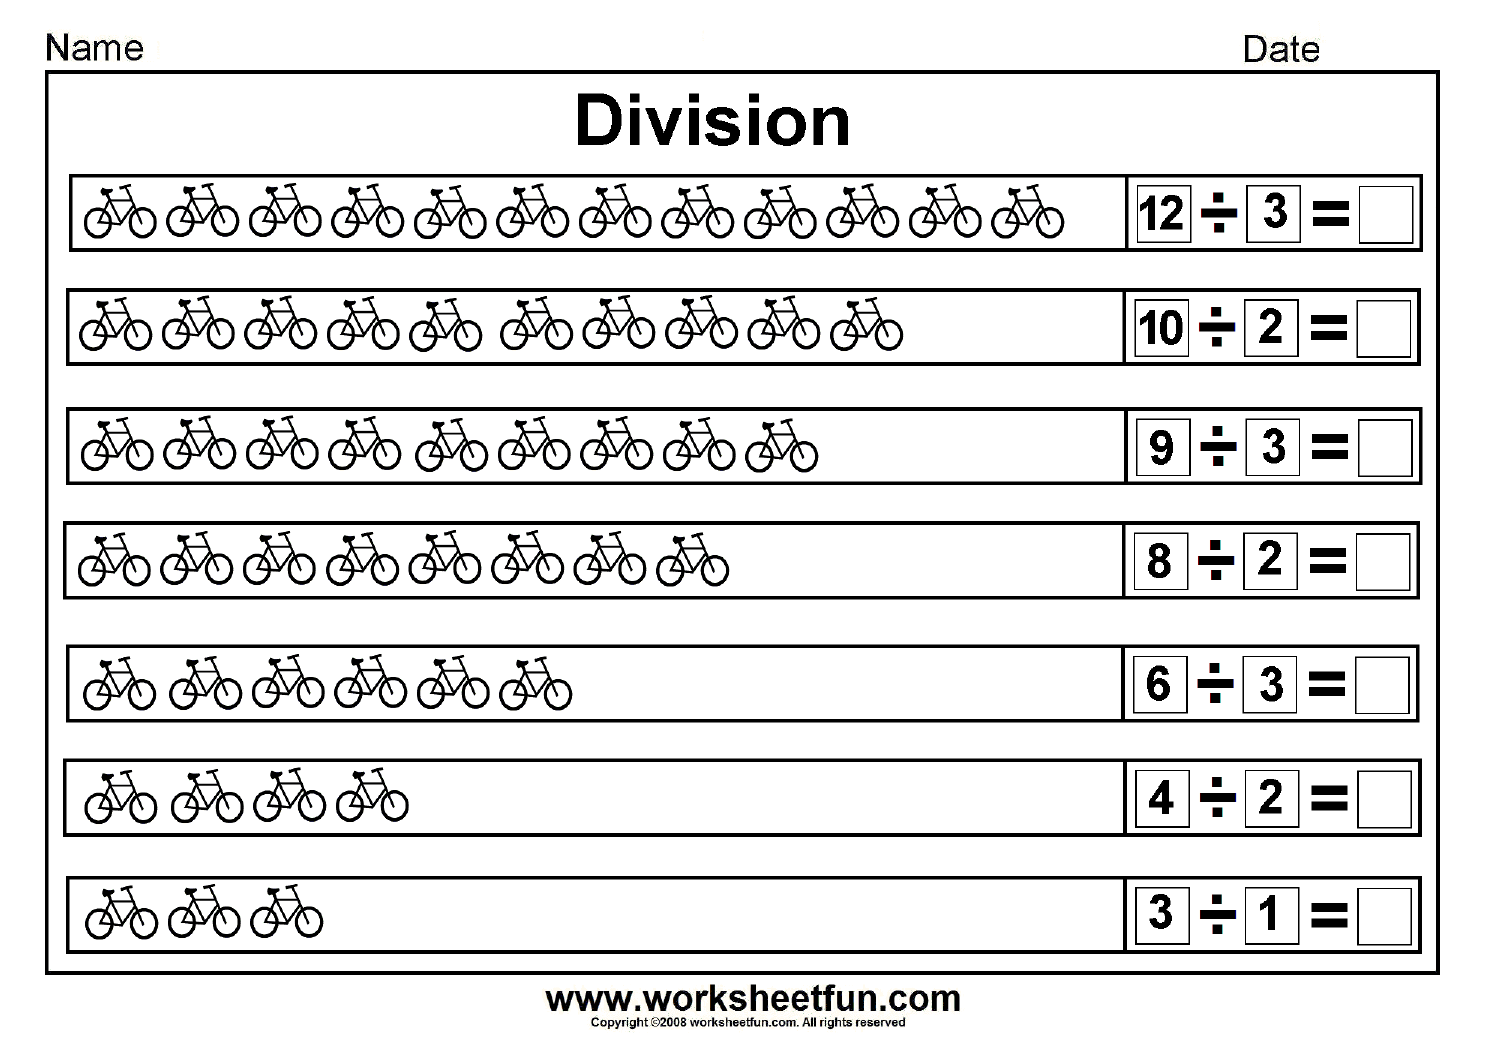 hight resolution of Division worksheets on worksheetfun.com   Division worksheets